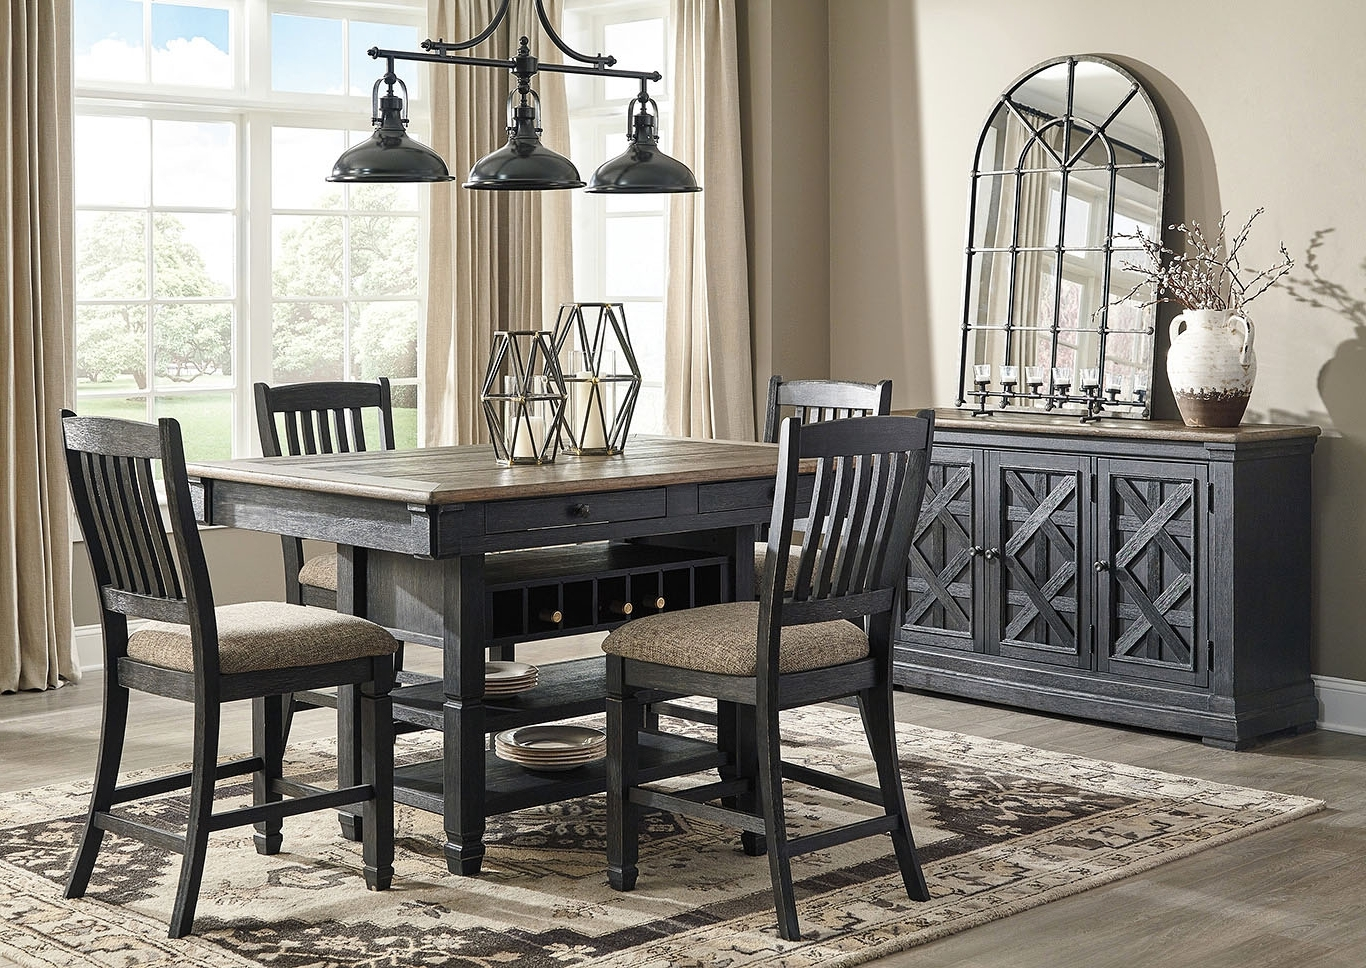 Furniture And More For Less Tyler Creek Black/grayish Brown 5 Piece Intended For Widely Used Craftsman 5 Piece Round Dining Sets With Side Chairs (View 11 of 25)